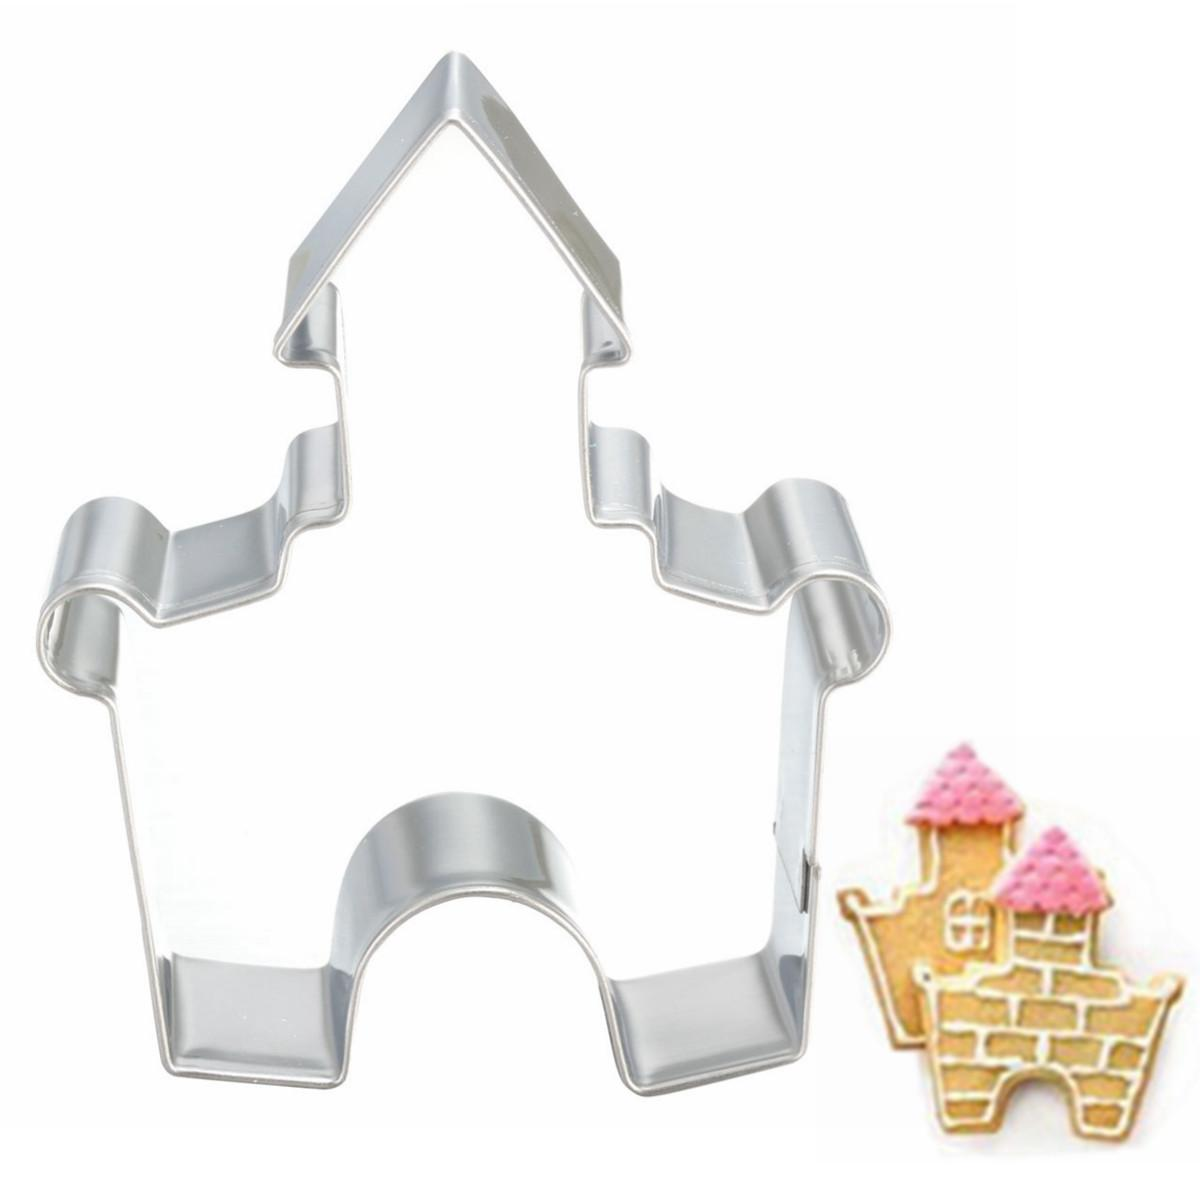 2017 stainless steel castle diy cookie cake mould cutter kitchen